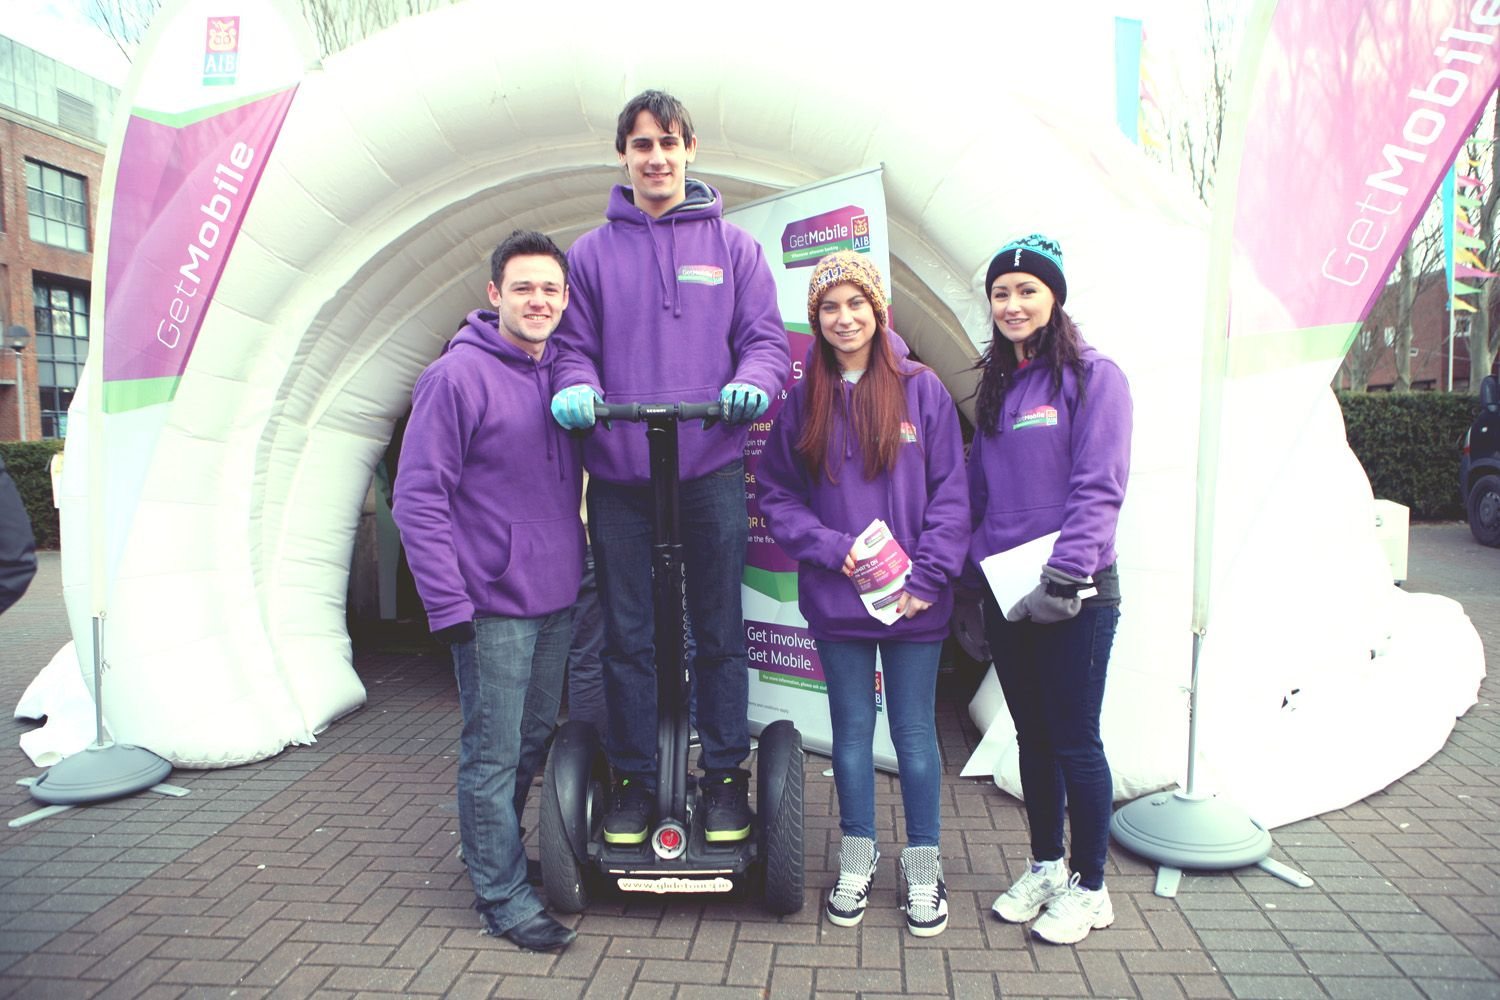 The AIB Get Mobile team outside the AIB dome which was on campus all week giving students the chance to win some great prizes and take part in fun games.